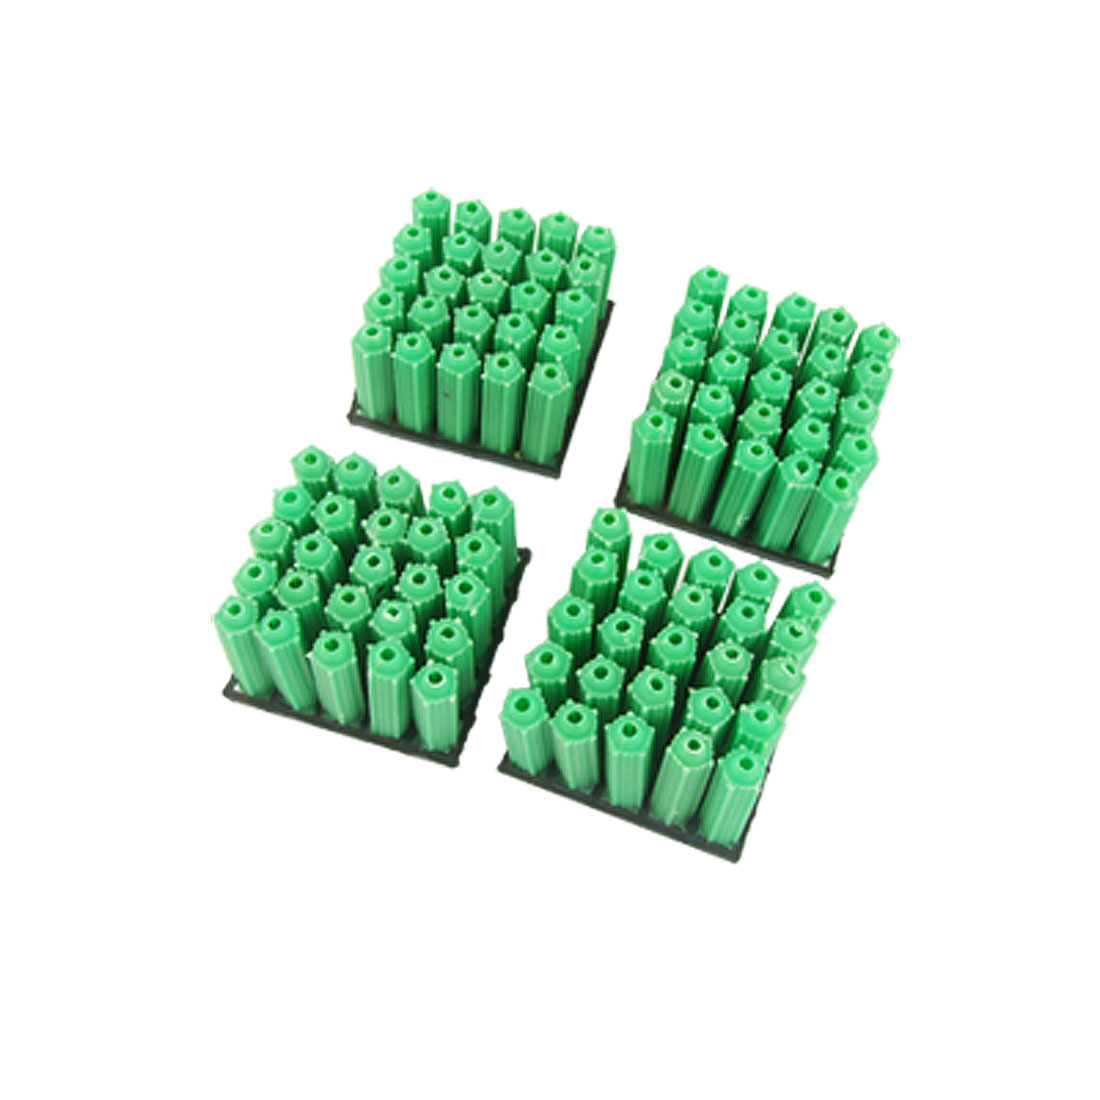 Unique Bargains 6mm Green Nonslip Masnory Plastic Wall Plug 100 Pcs